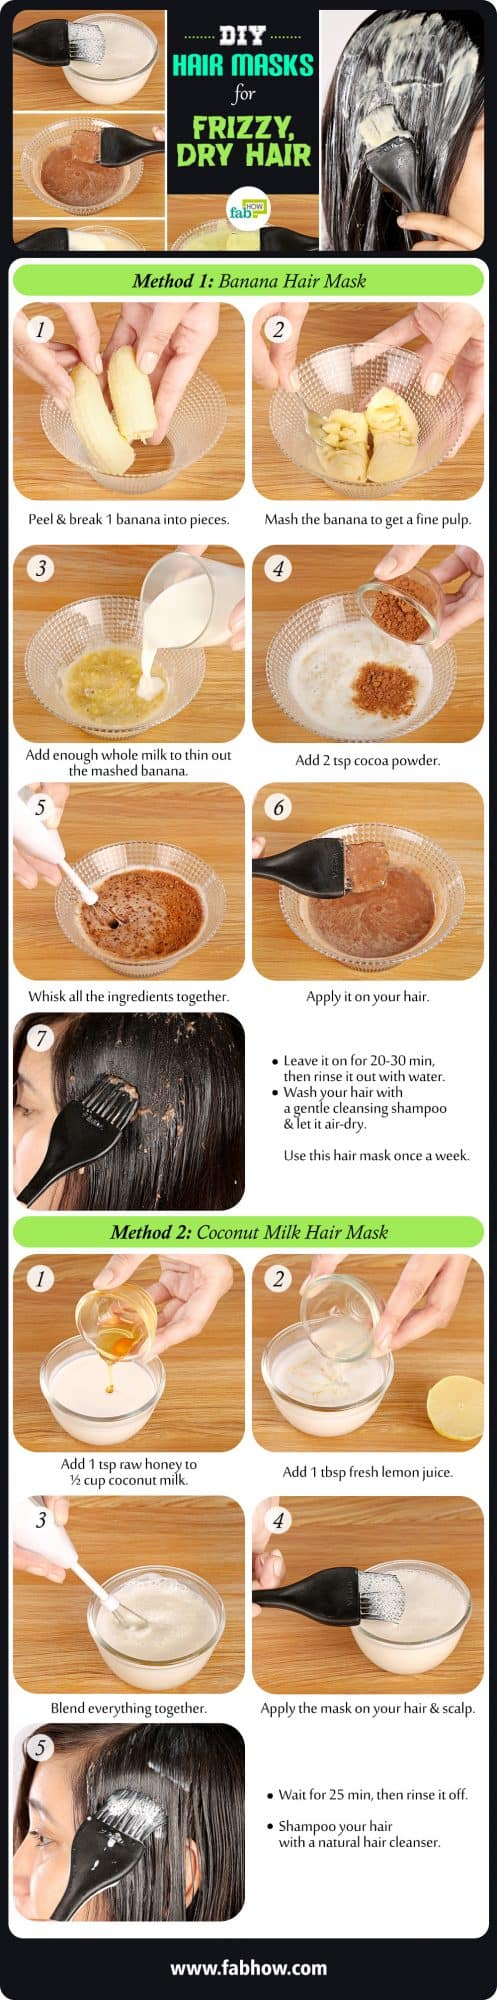 Homemade Hair Masks for Dry, Dull and Frizzy Hair Summary